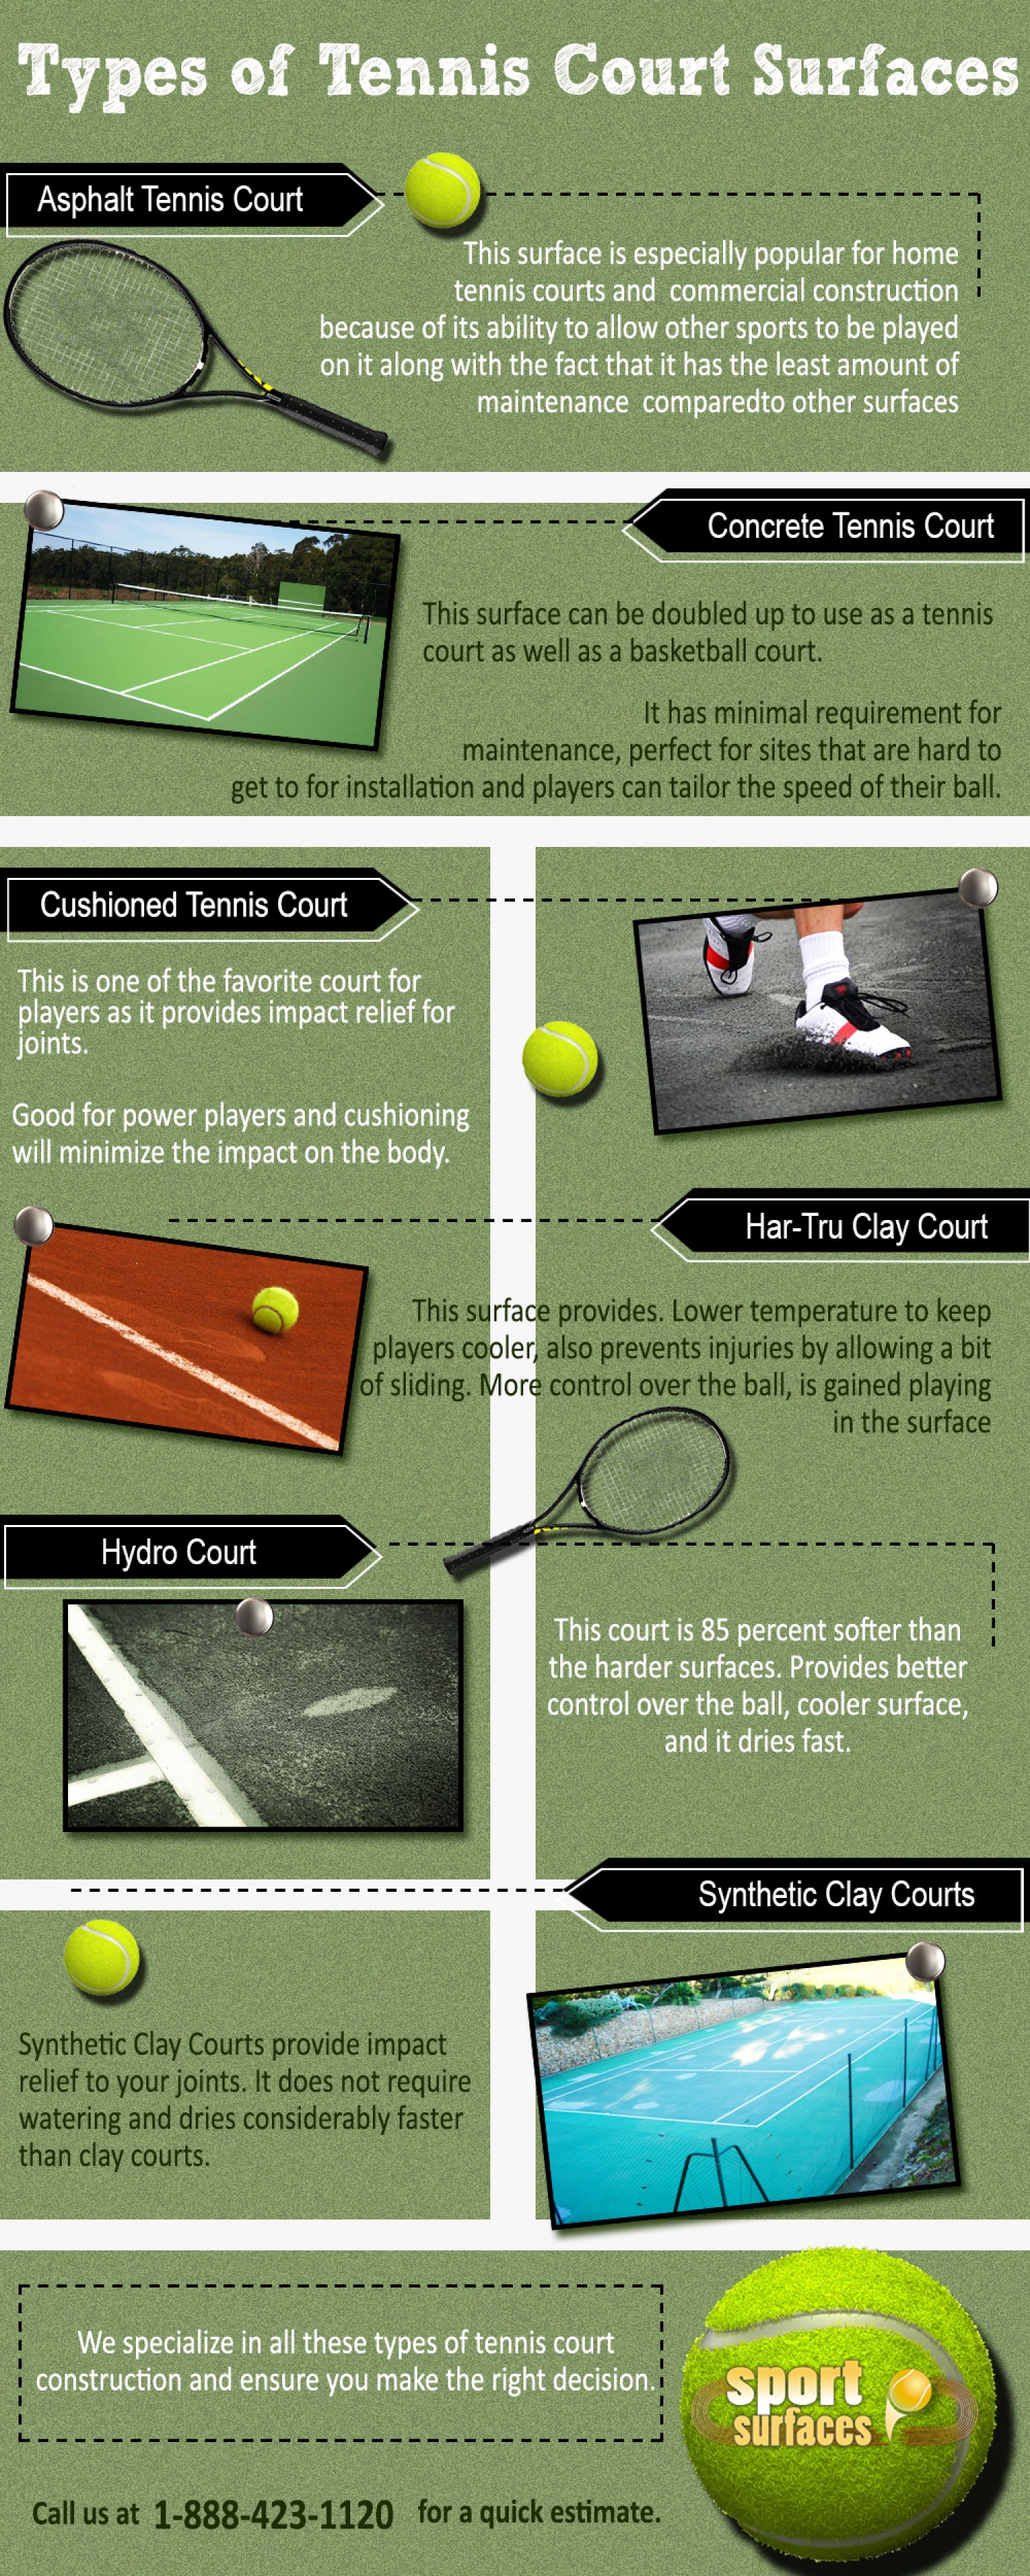 20. Types of Tennis Courts